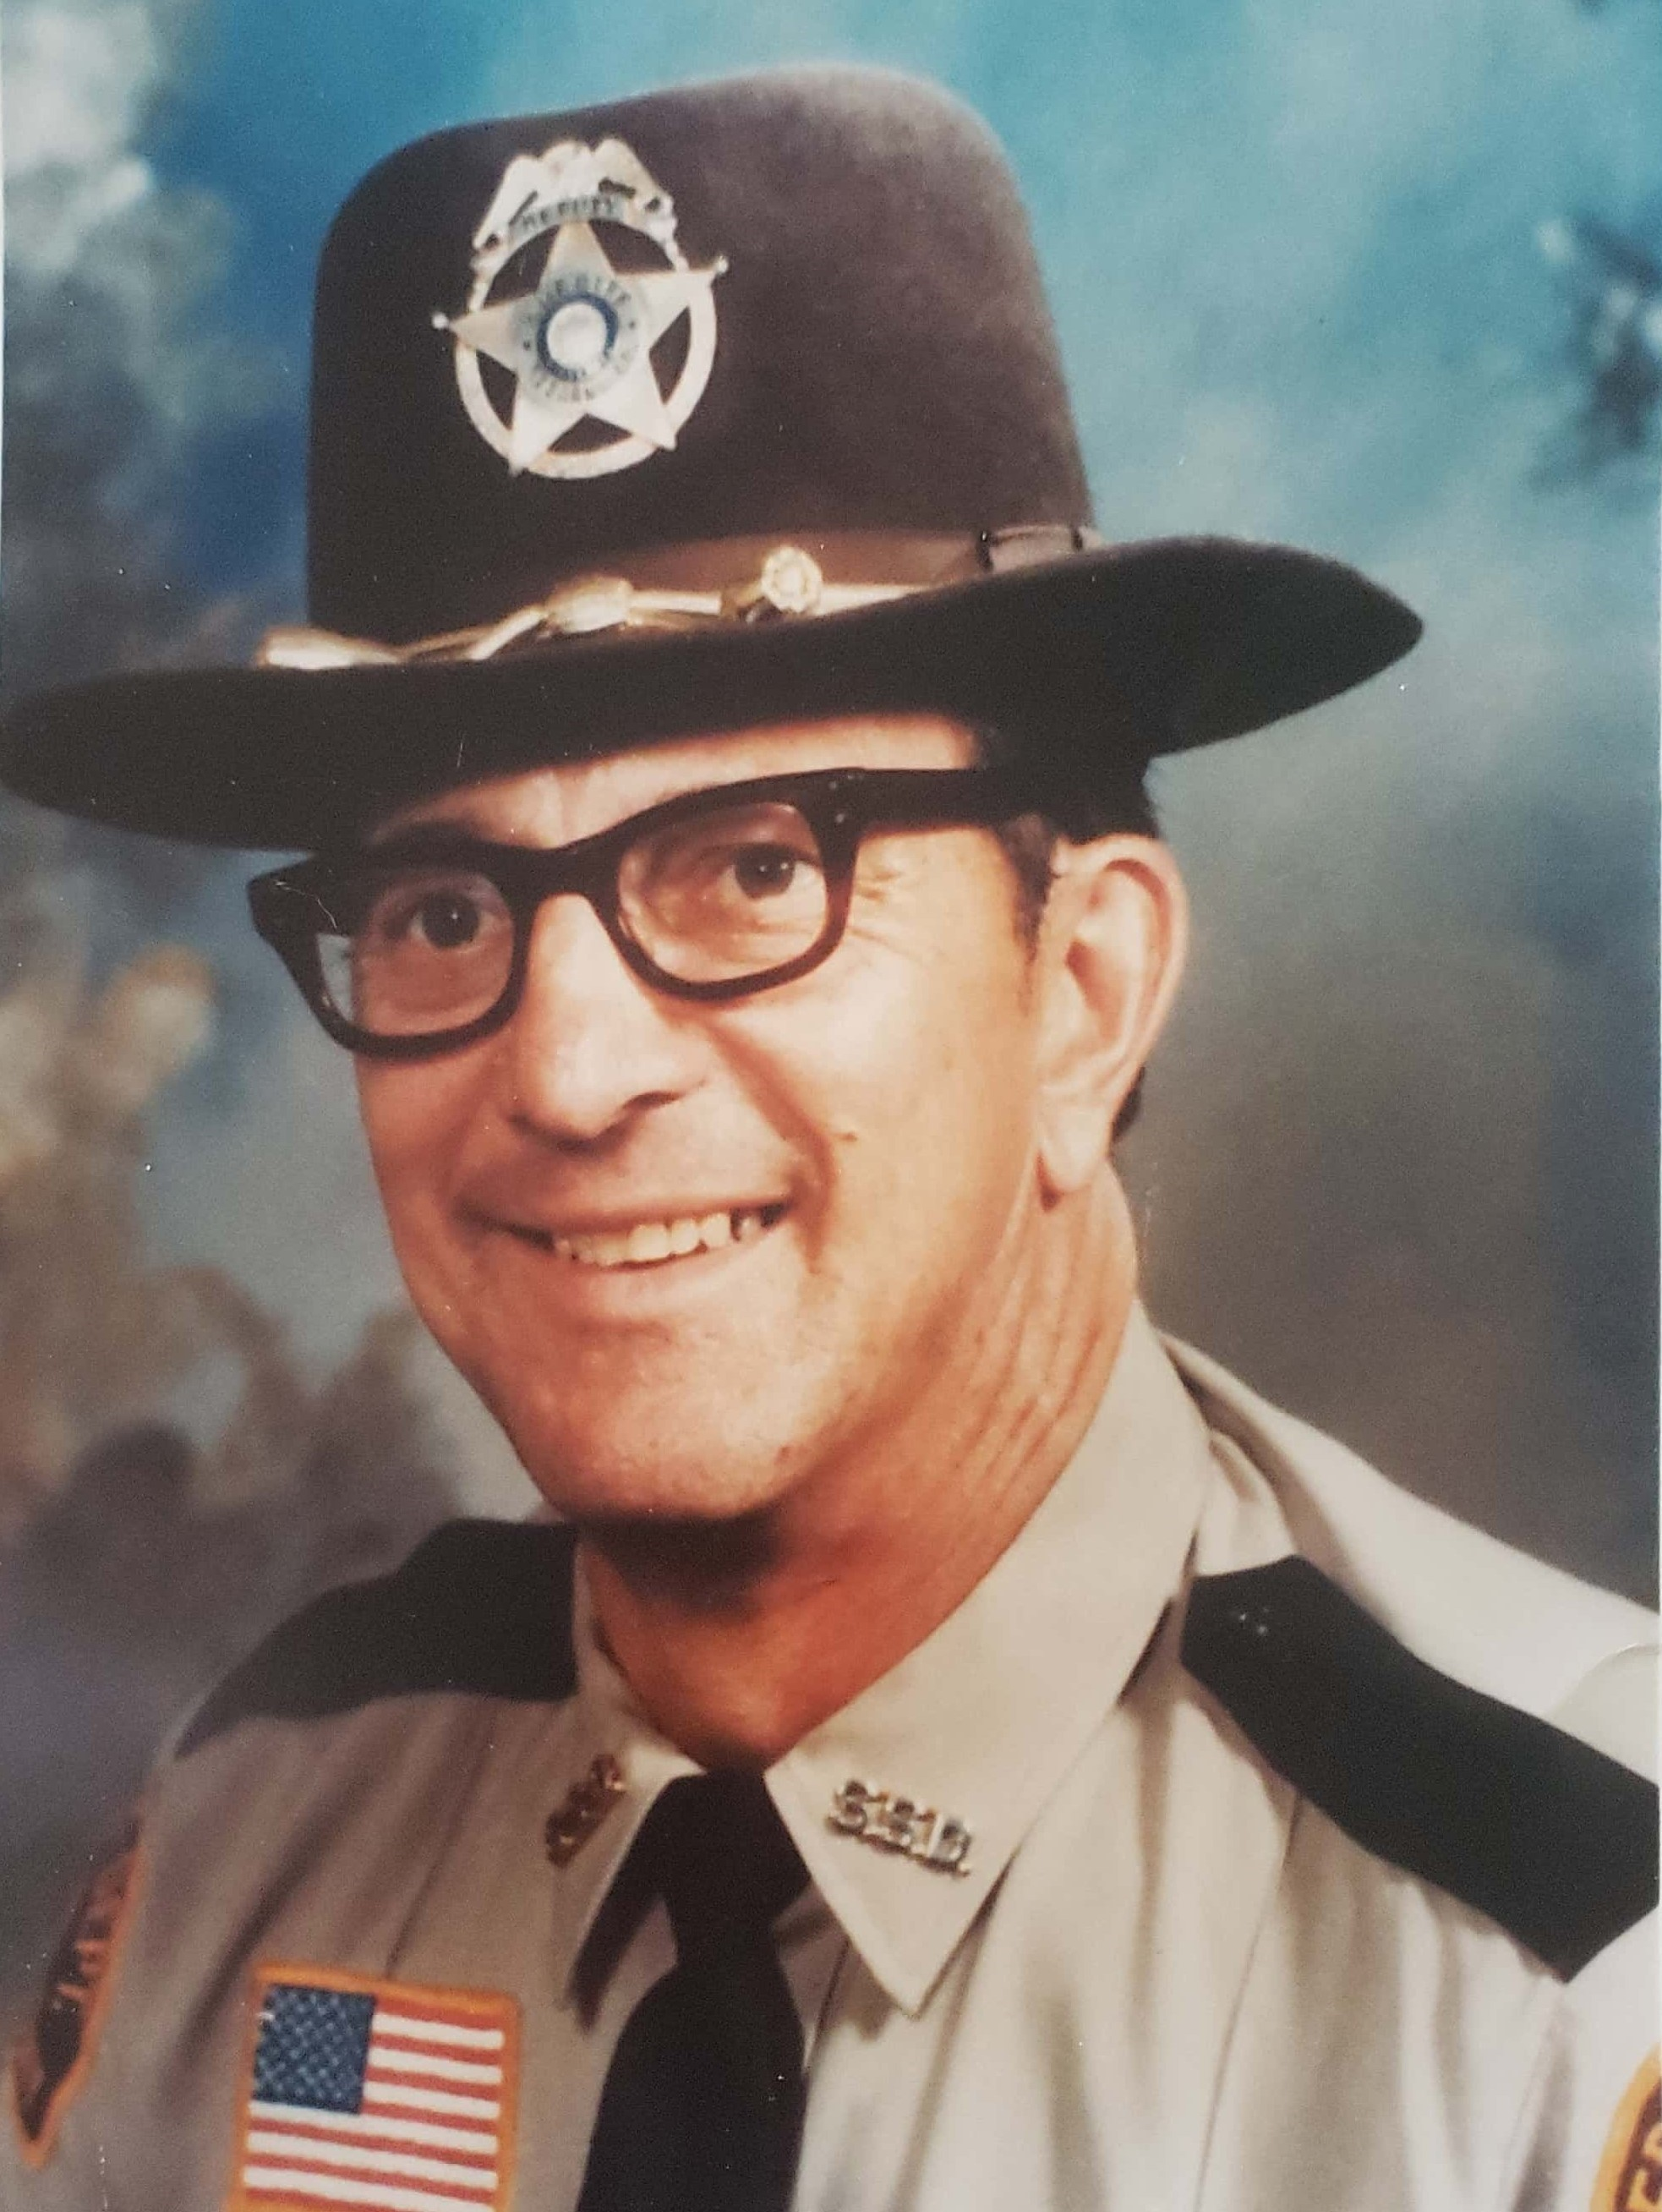 Senior Deputy Edwin H. Arendt | Stearns County Sheriff's Office, Minnesota